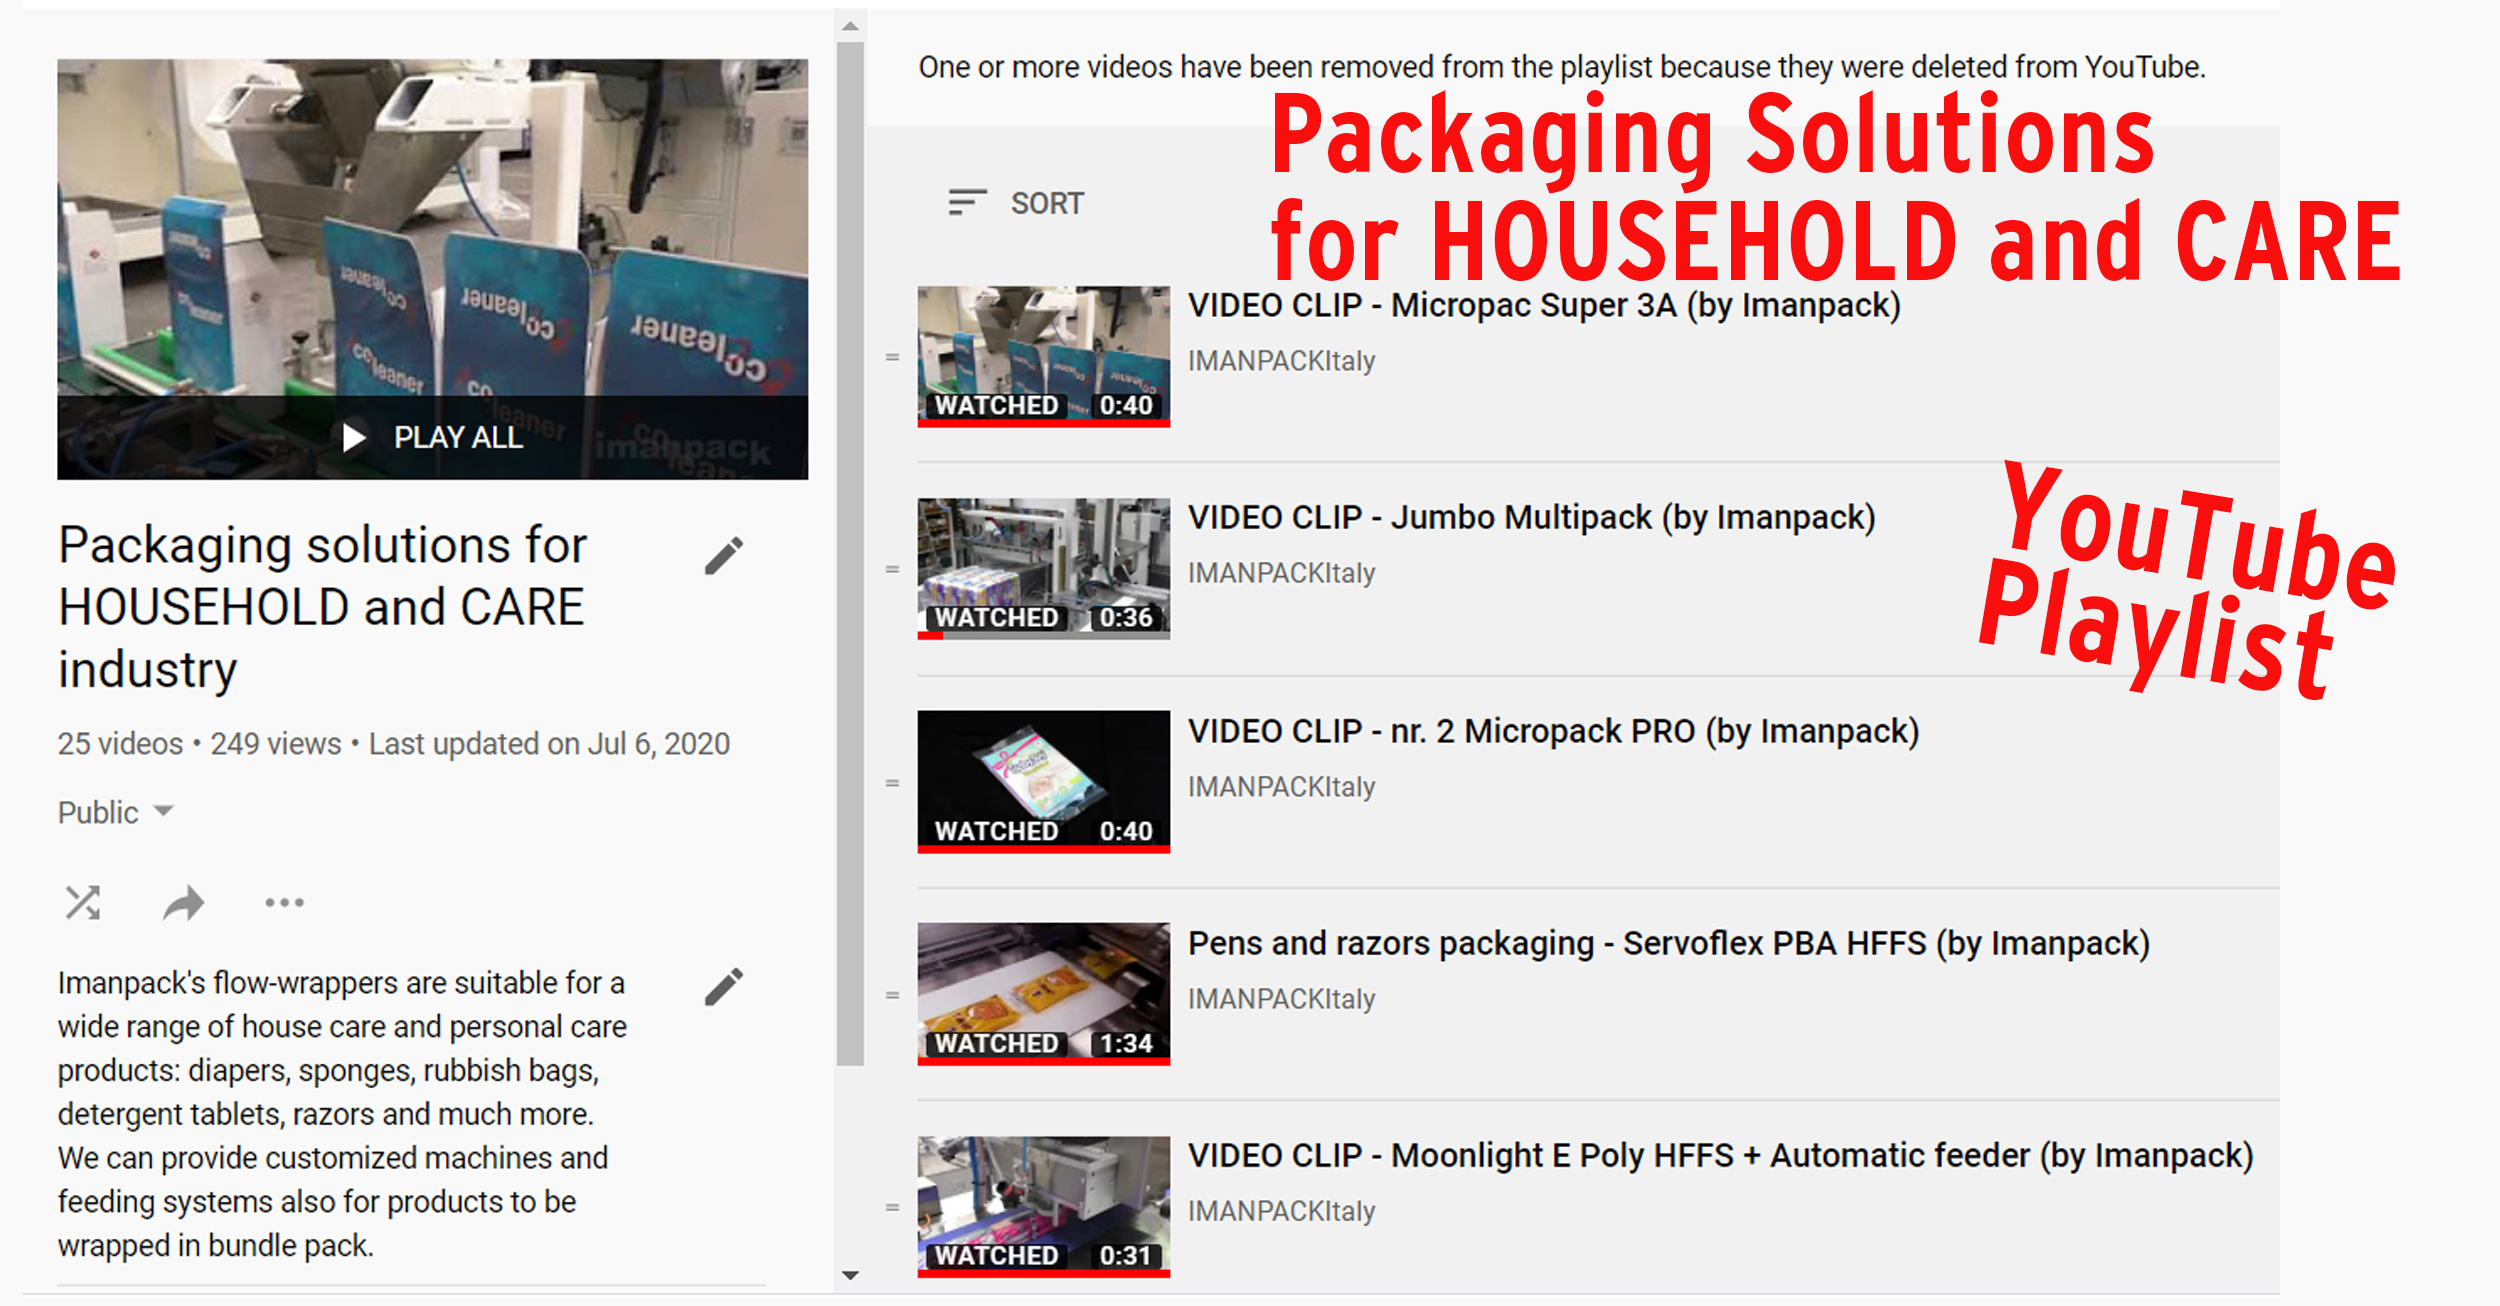 Packaging solutions for HOUSEHOLD and CARE industry - ImanpackItaly YouTube Channel